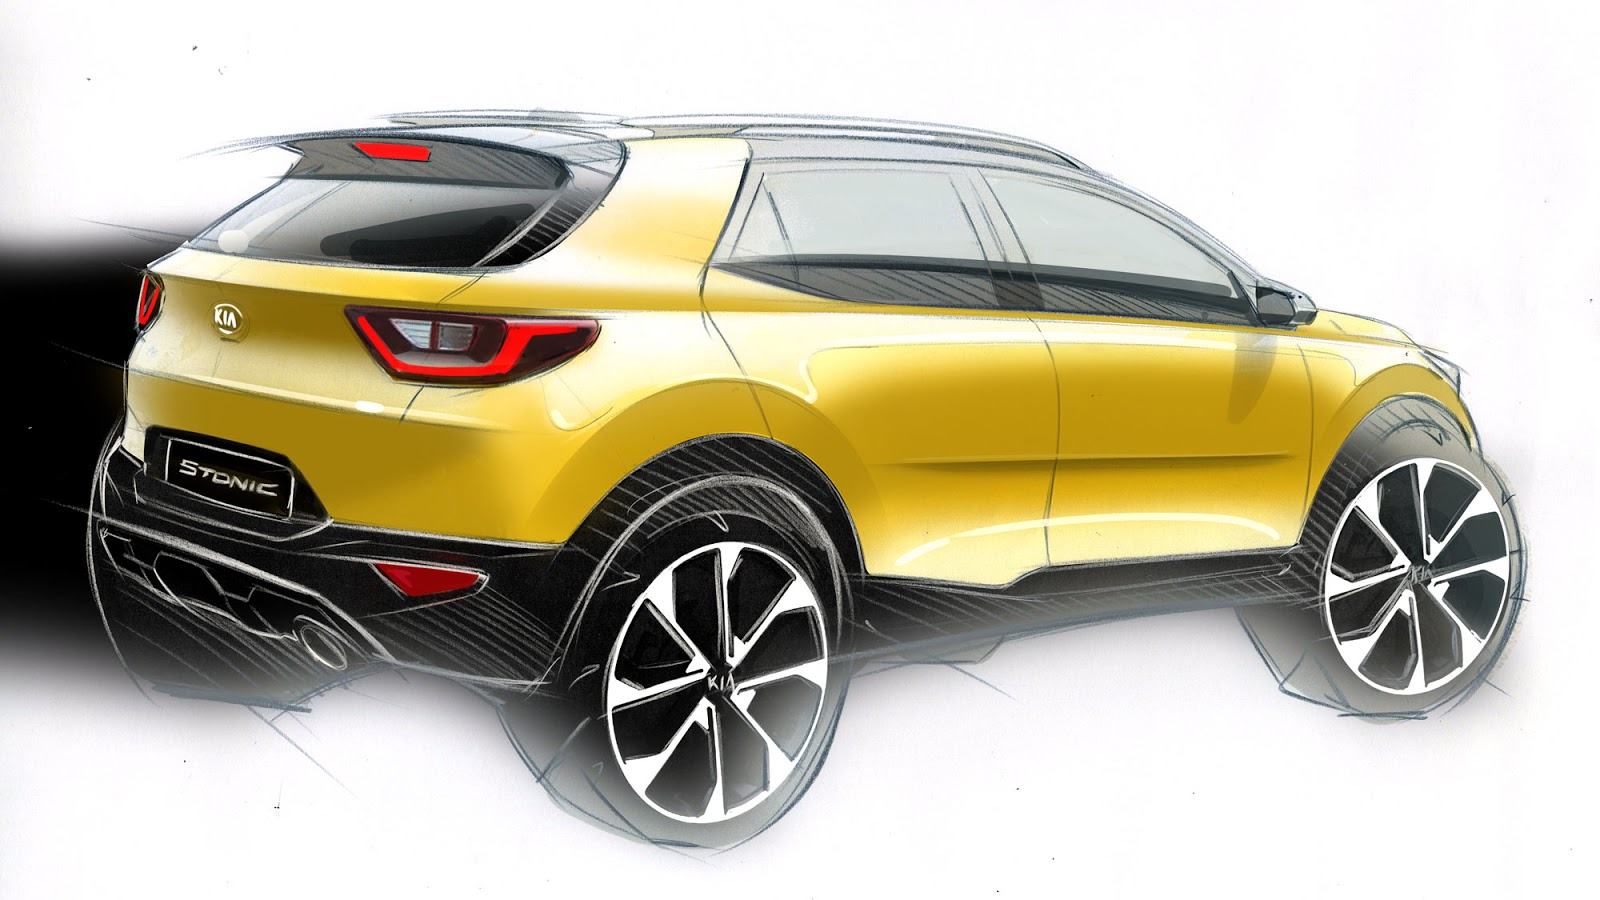 Kia Stonic sketch - of the final design from the rear